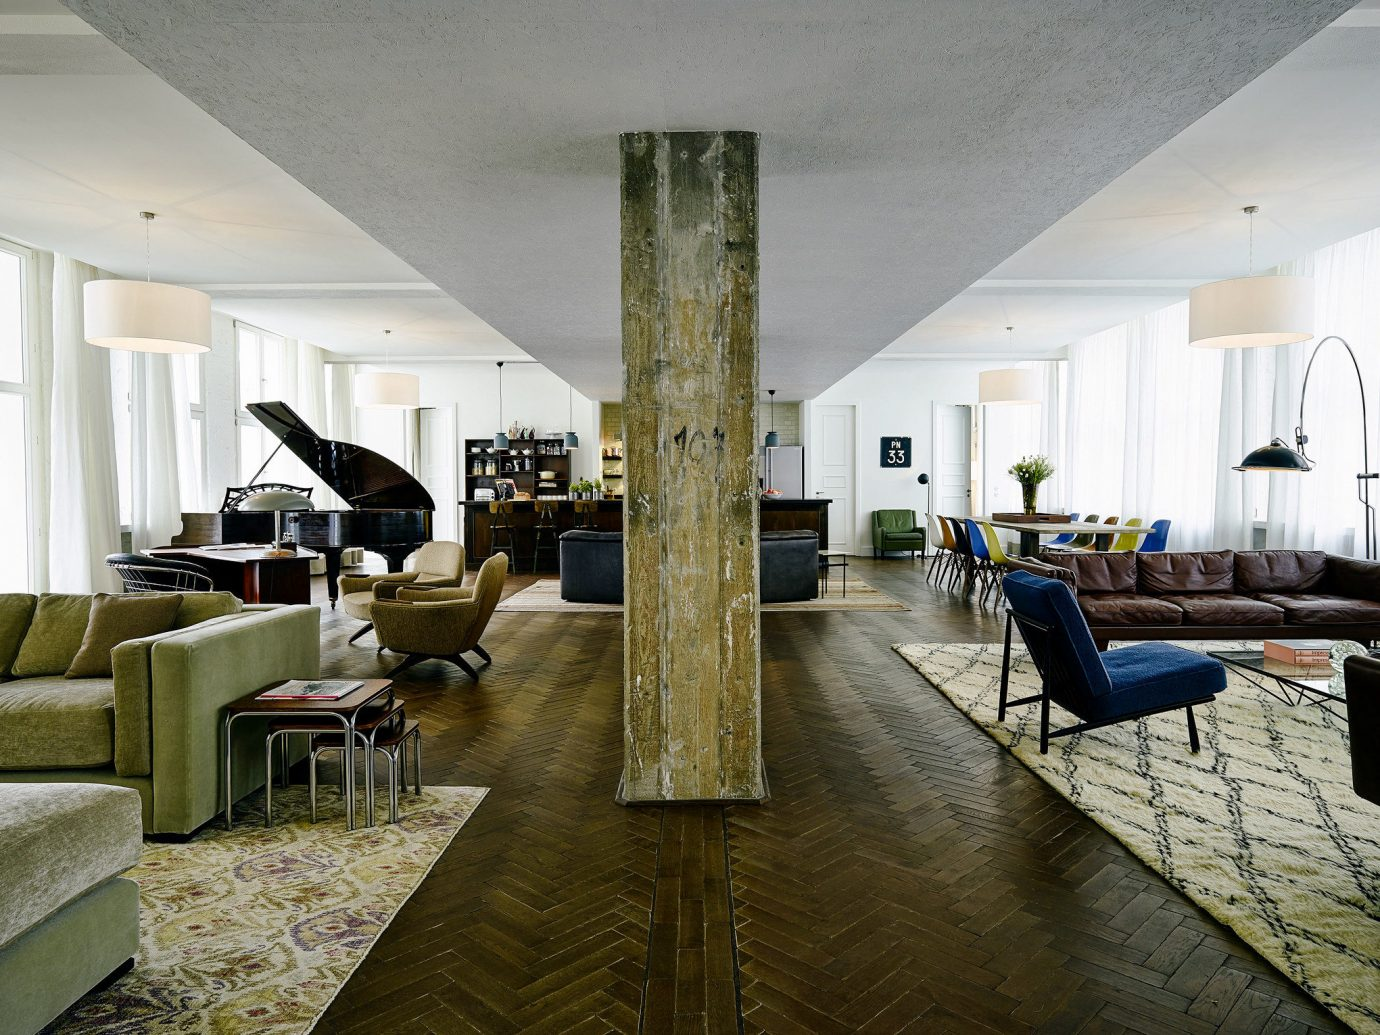 Berlin Boutique Hotels Germany Hotels Luxury Travel indoor floor ceiling room wall interior design Living living room Lobby furniture apartment real estate flooring penthouse apartment house interior designer Suite area several